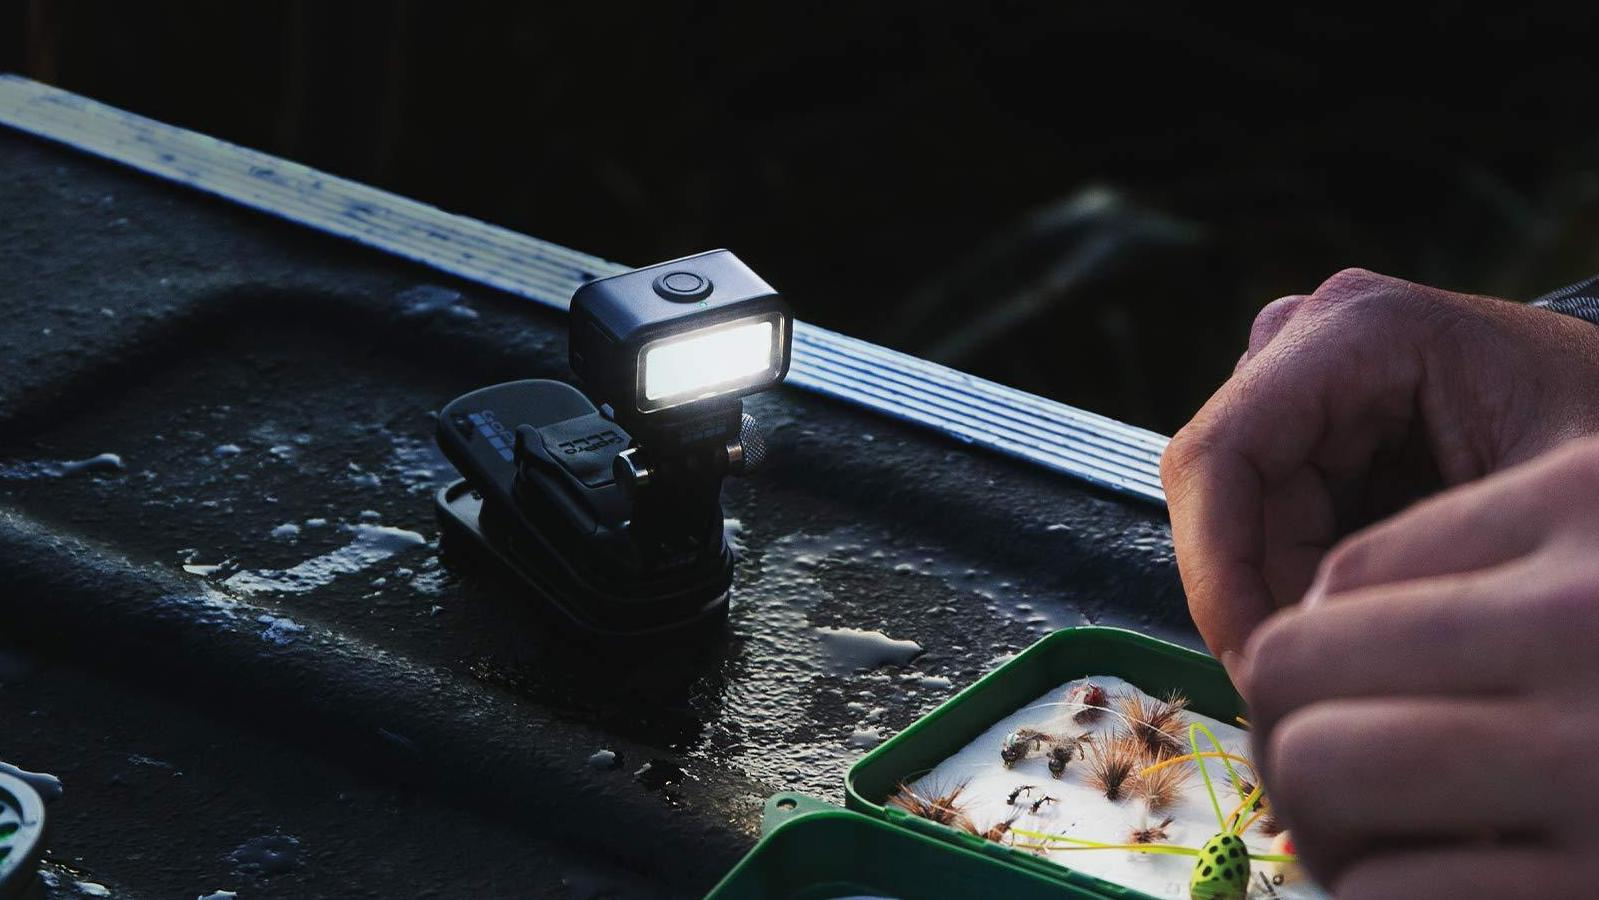 GoPro Light Mod LED camera light gives you up to 4 levels of brightness in dim conditions